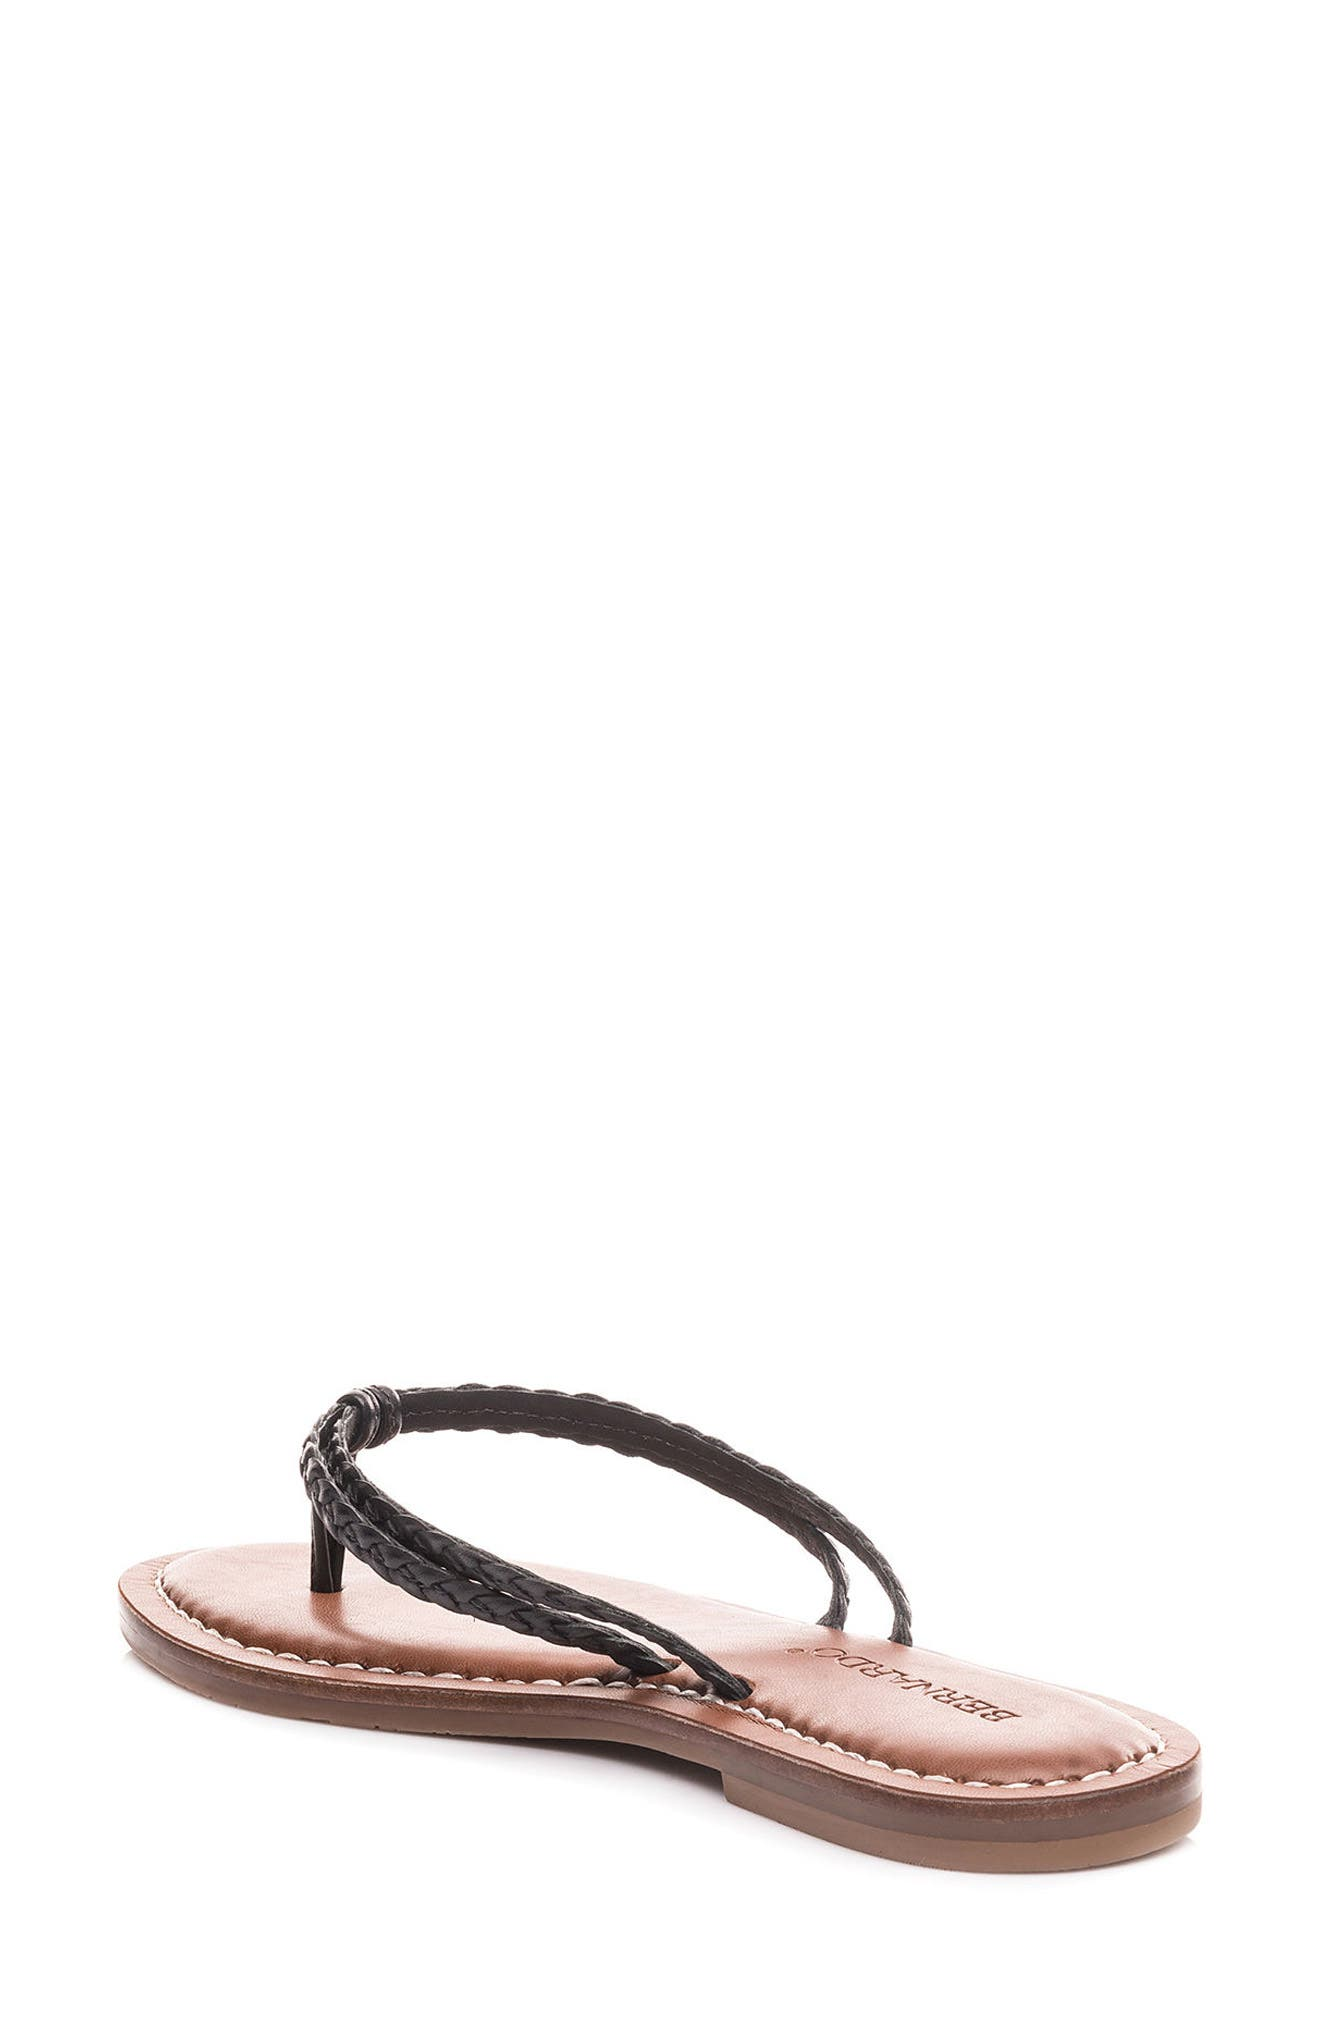 Bernardo Greta Braided Strap Sandal,                             Alternate thumbnail 8, color,